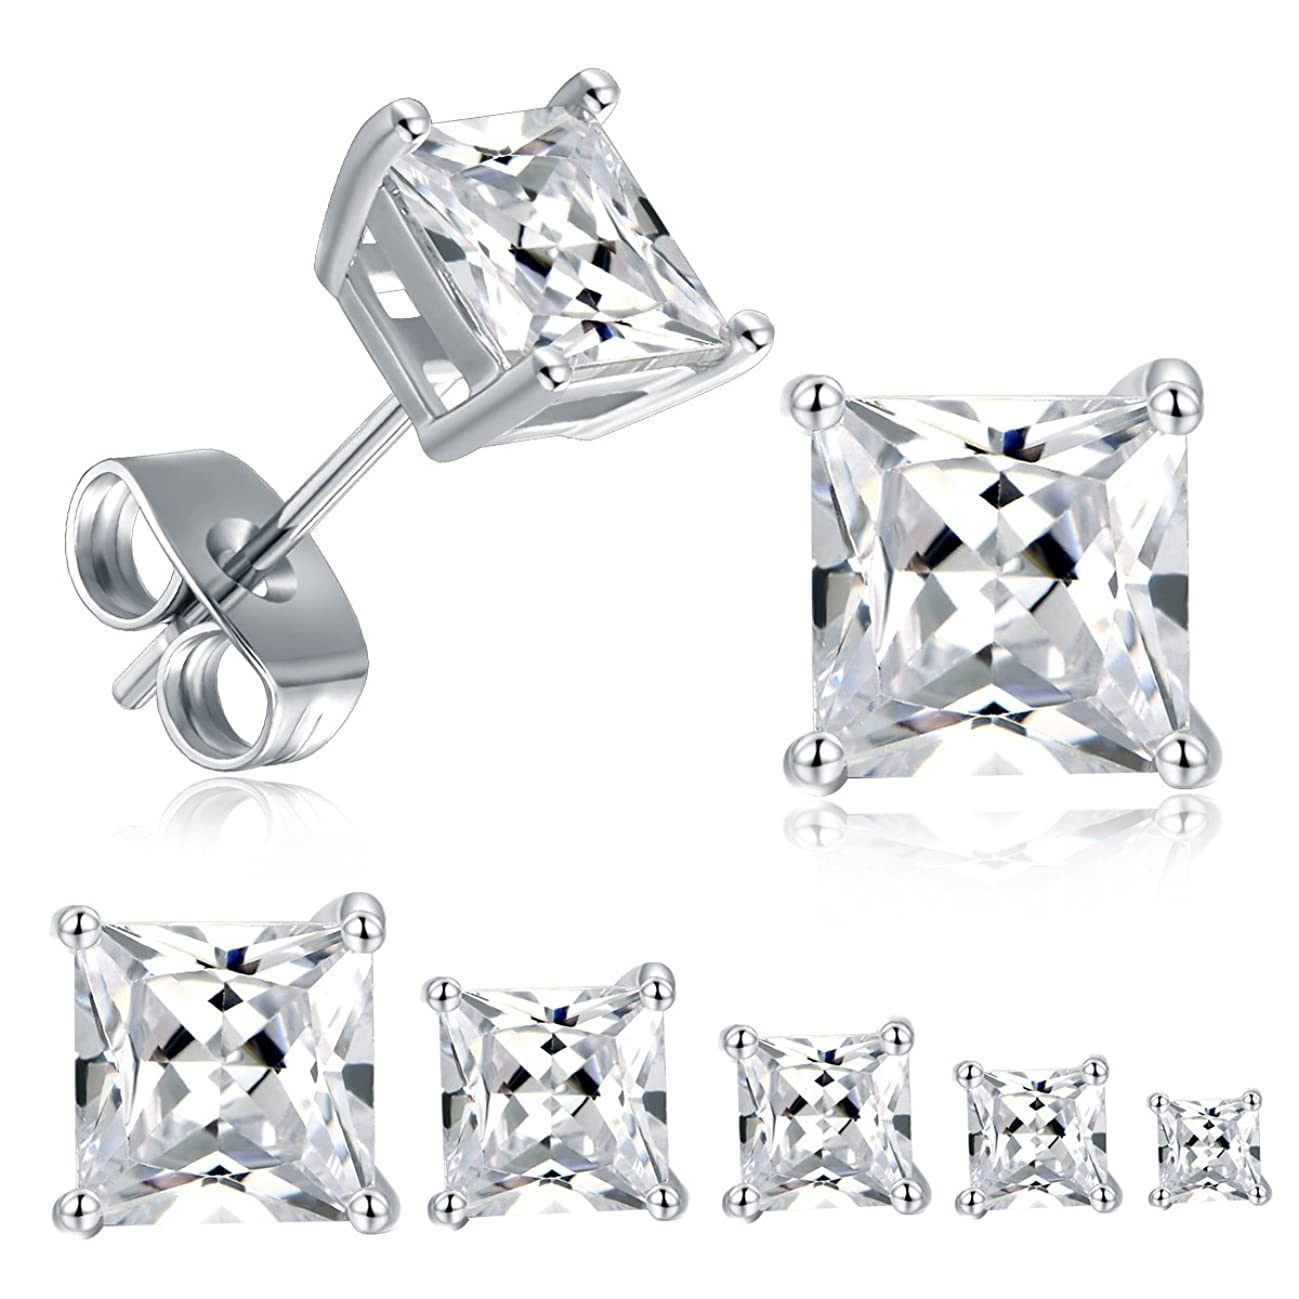 18K White Gold Plated Princess Cut Cubic Zirconia Stud Earrings Pack of 5